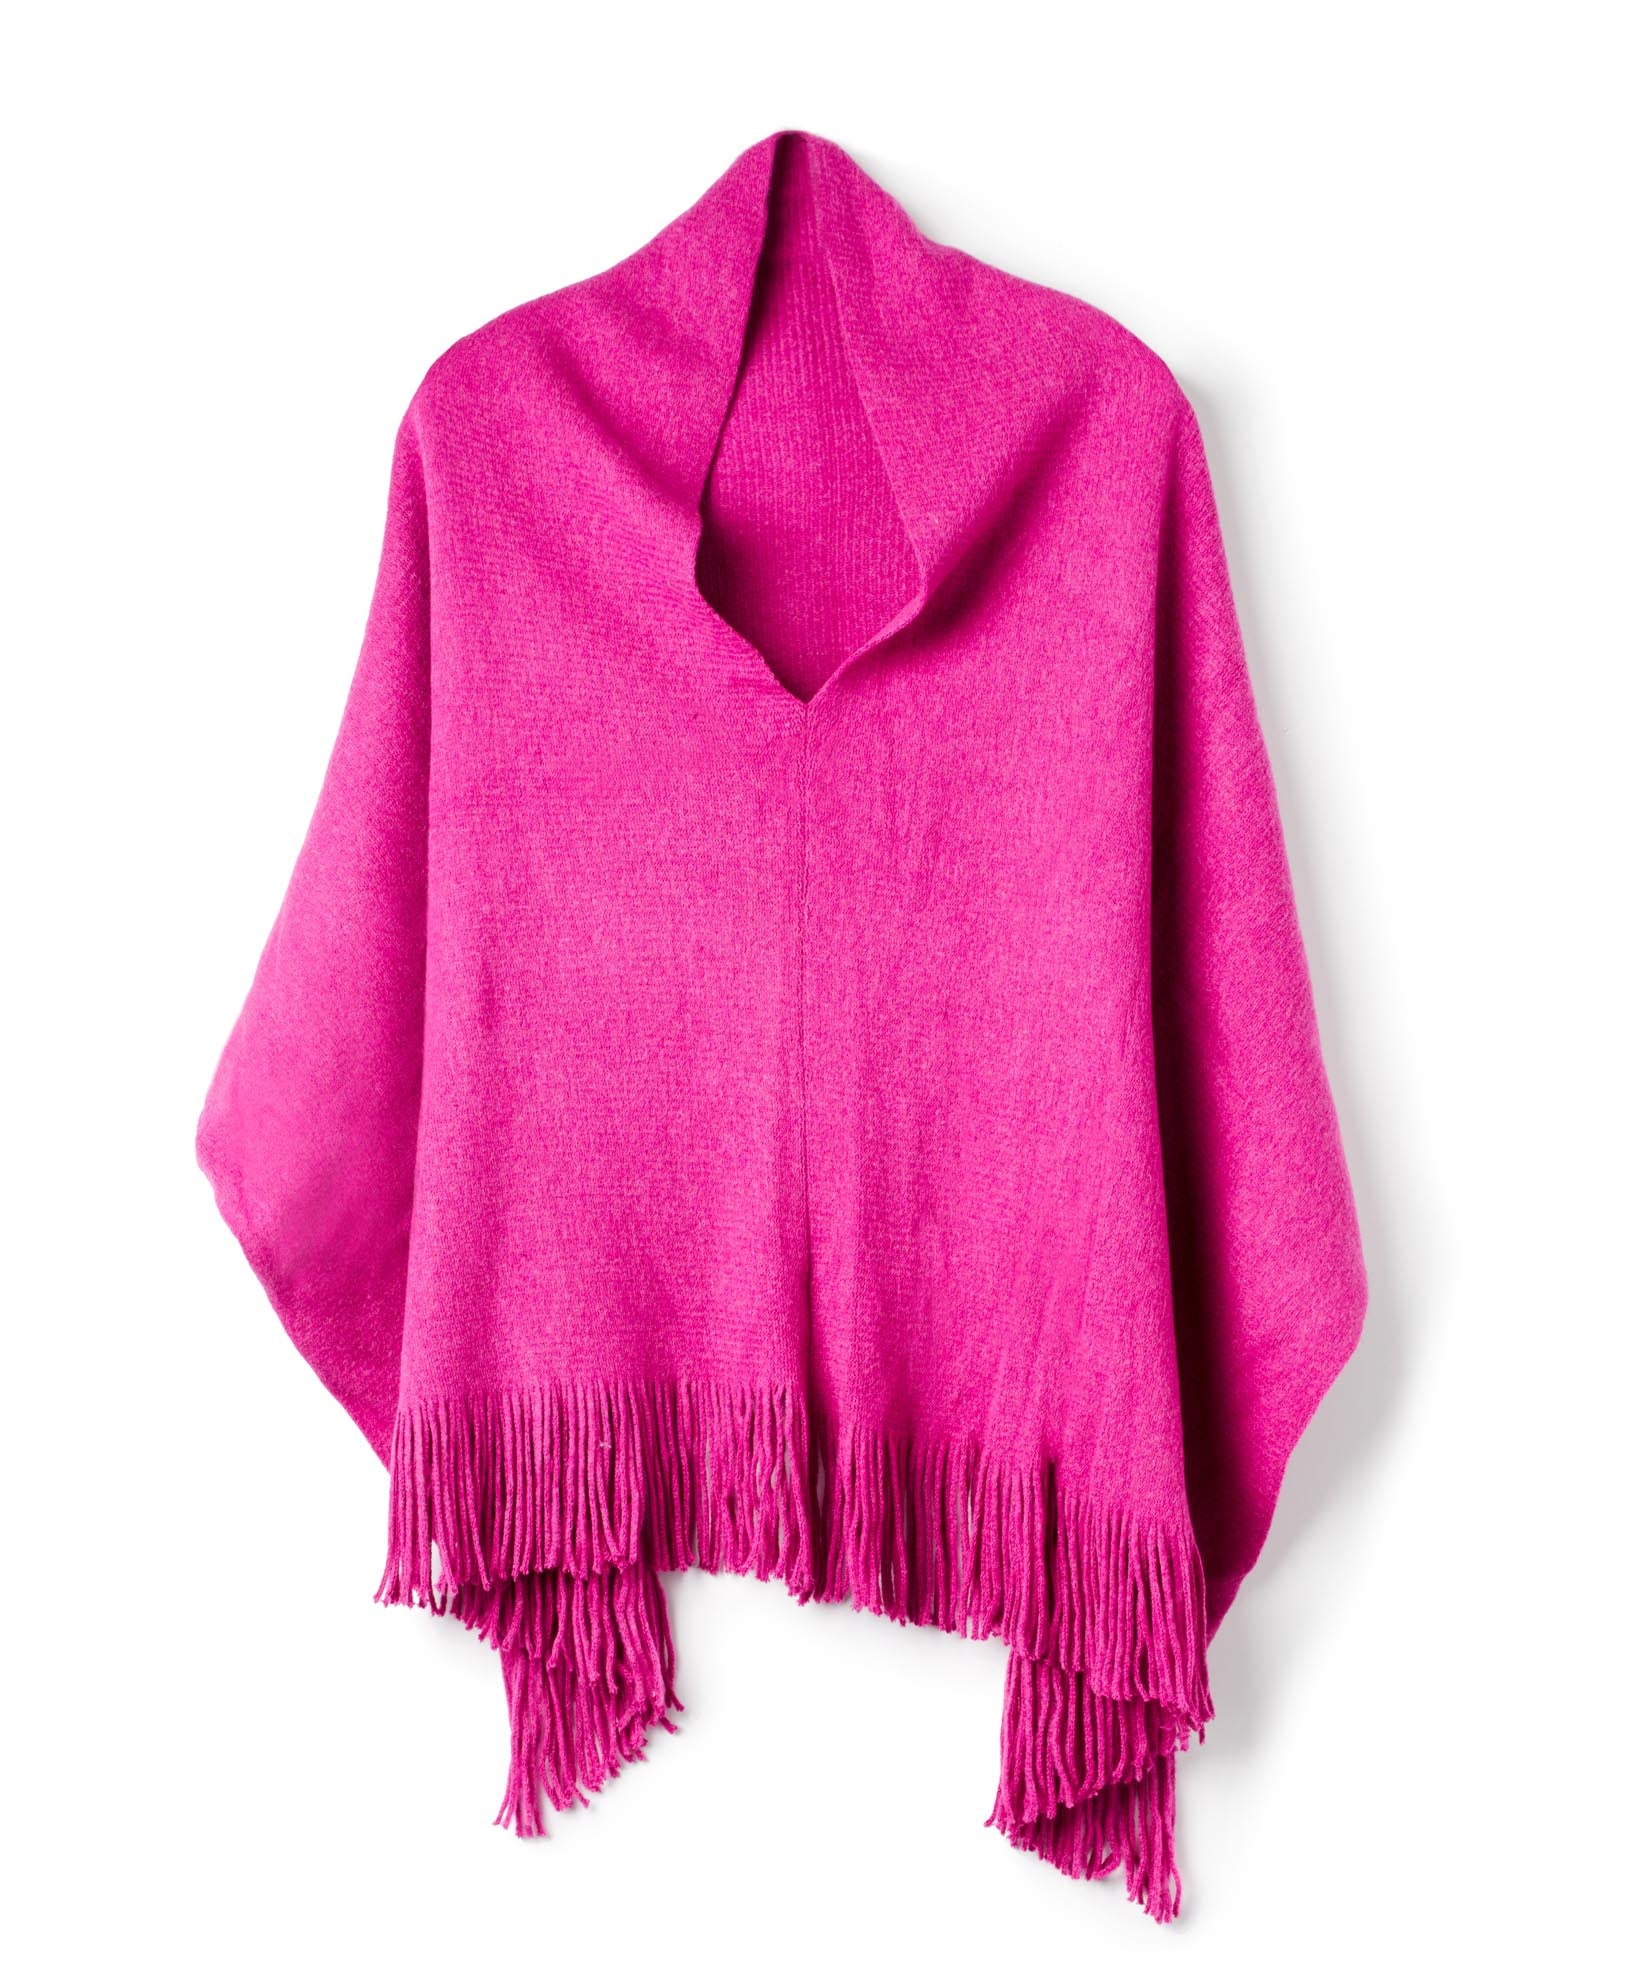 Winterberry - M Soft Poncho